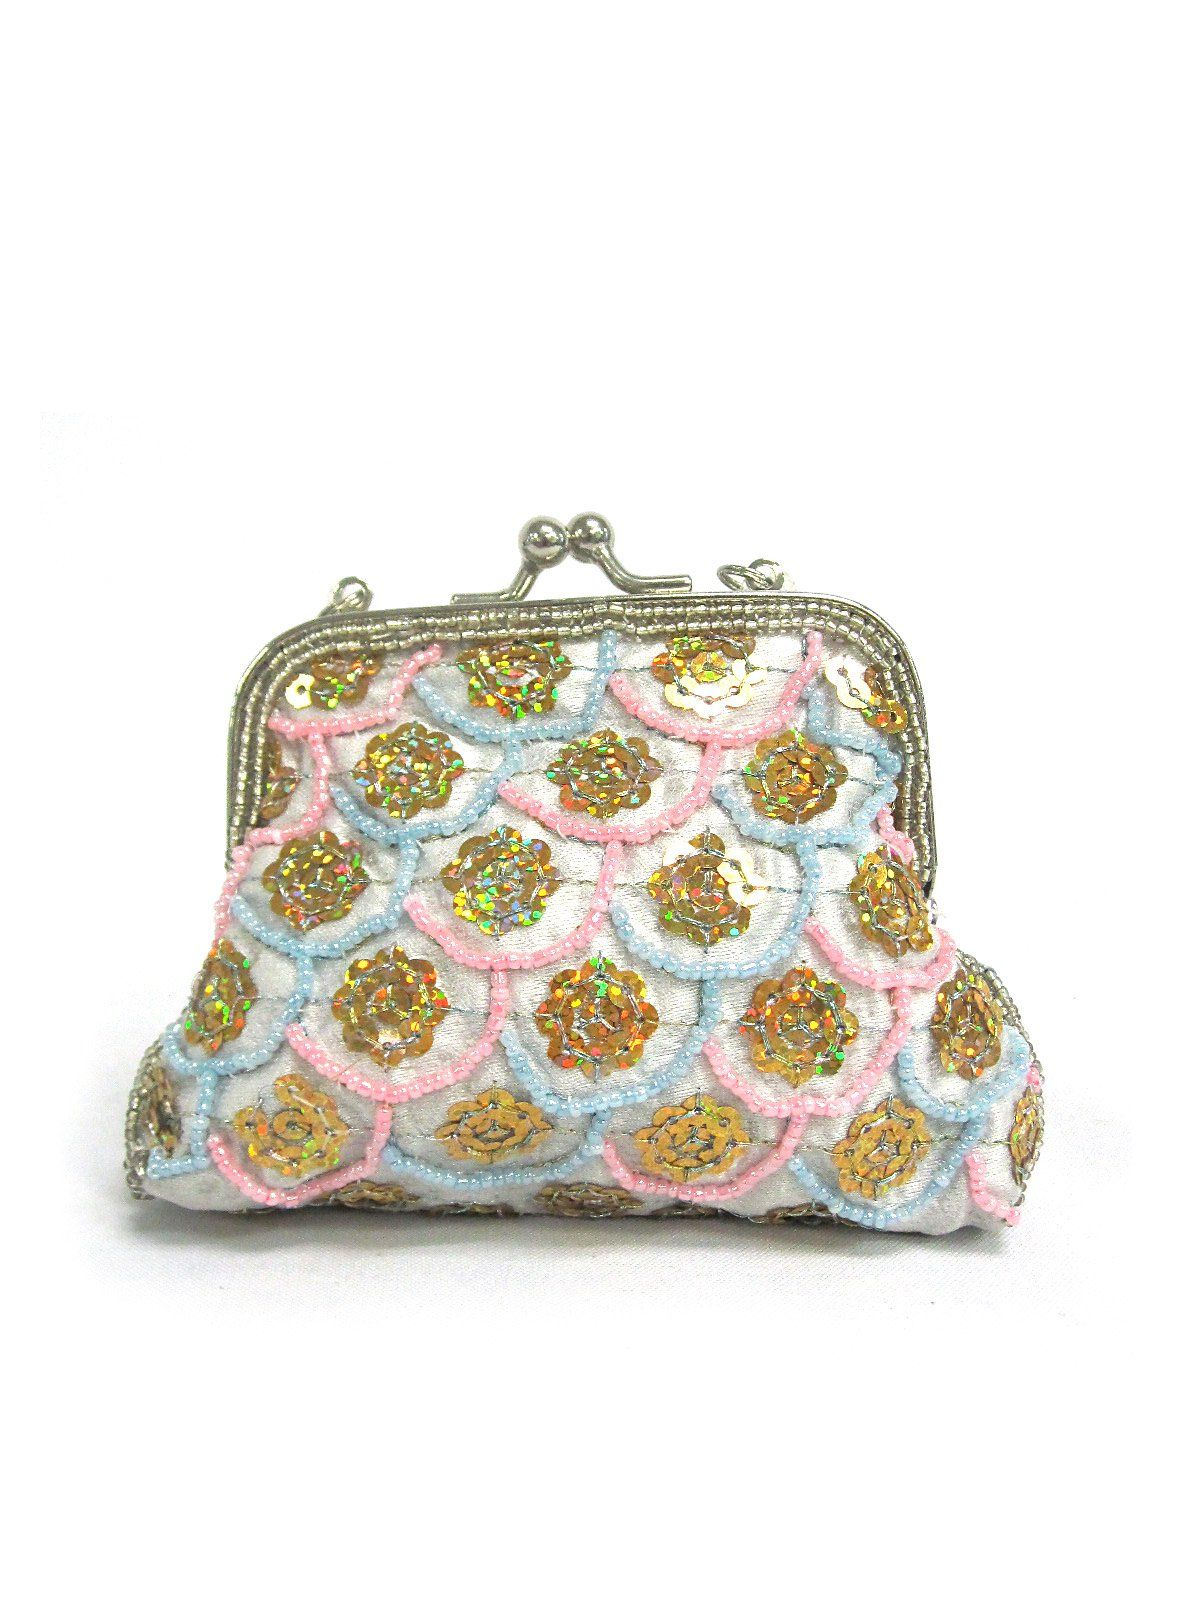 "Fashion Fish Scale Sequin Stitched Framed Small Coin Purse Cosmetic Makeup Pouch Wallet (Light Blue). Measures Approx: 5"" x 1"" x 4"". Assorted Dozen. Kiss Lock Closure. All Over Beading Embroidery. Fits Perfectly in Purse."